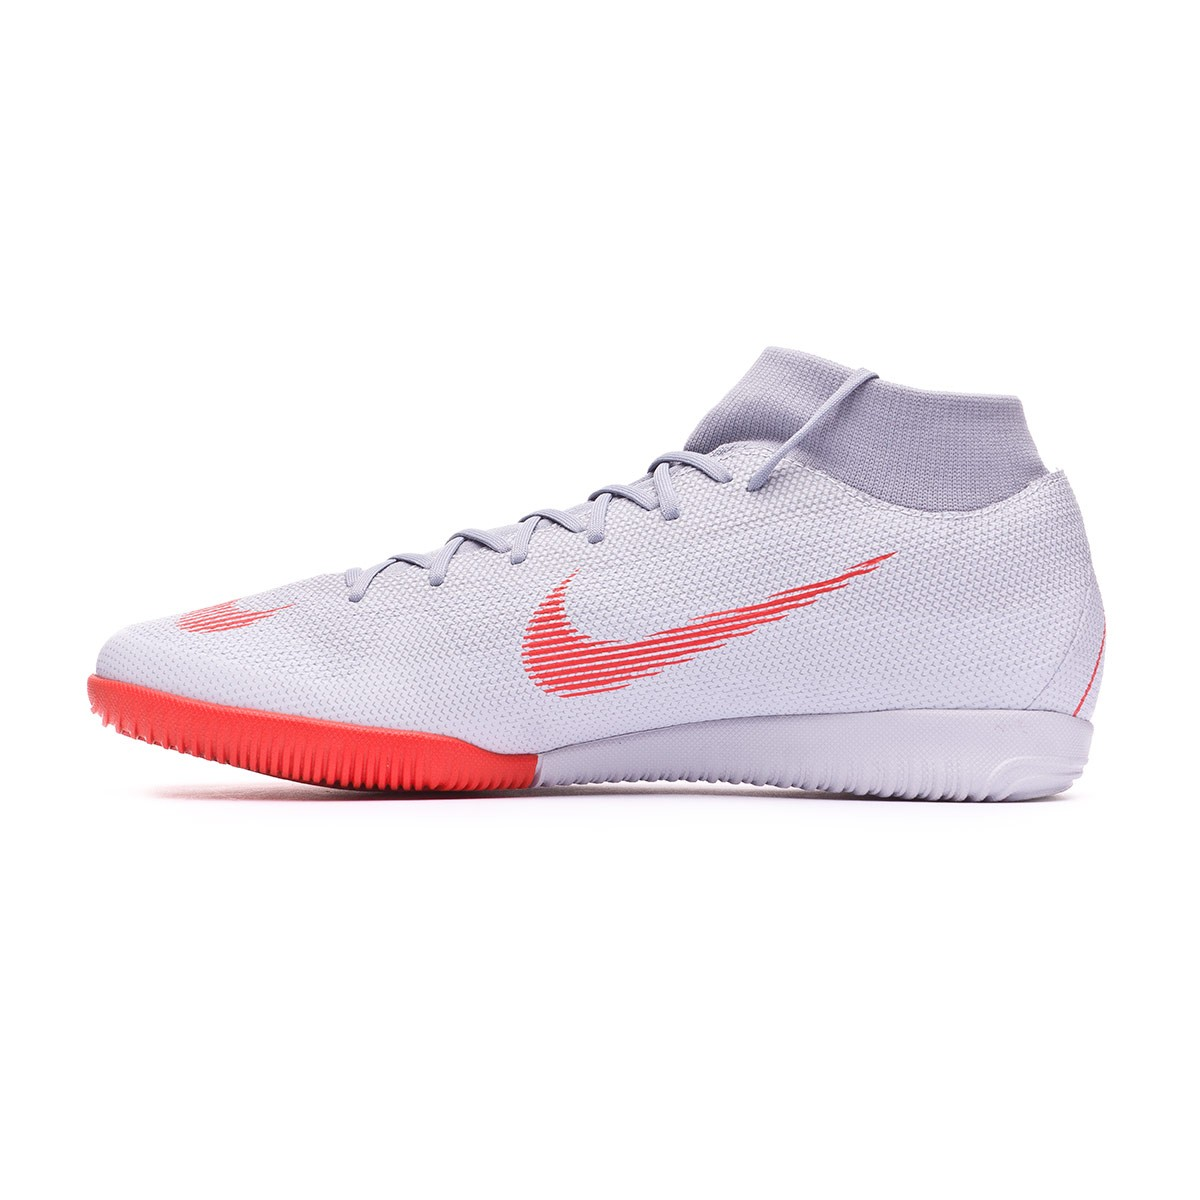 14806bd6a Futsal Boot Nike Mercurial SuperflyX VI Academy IC Wolf grey-Light  crimson-Pure platinum - Tienda de fútbol Fútbol Emotion